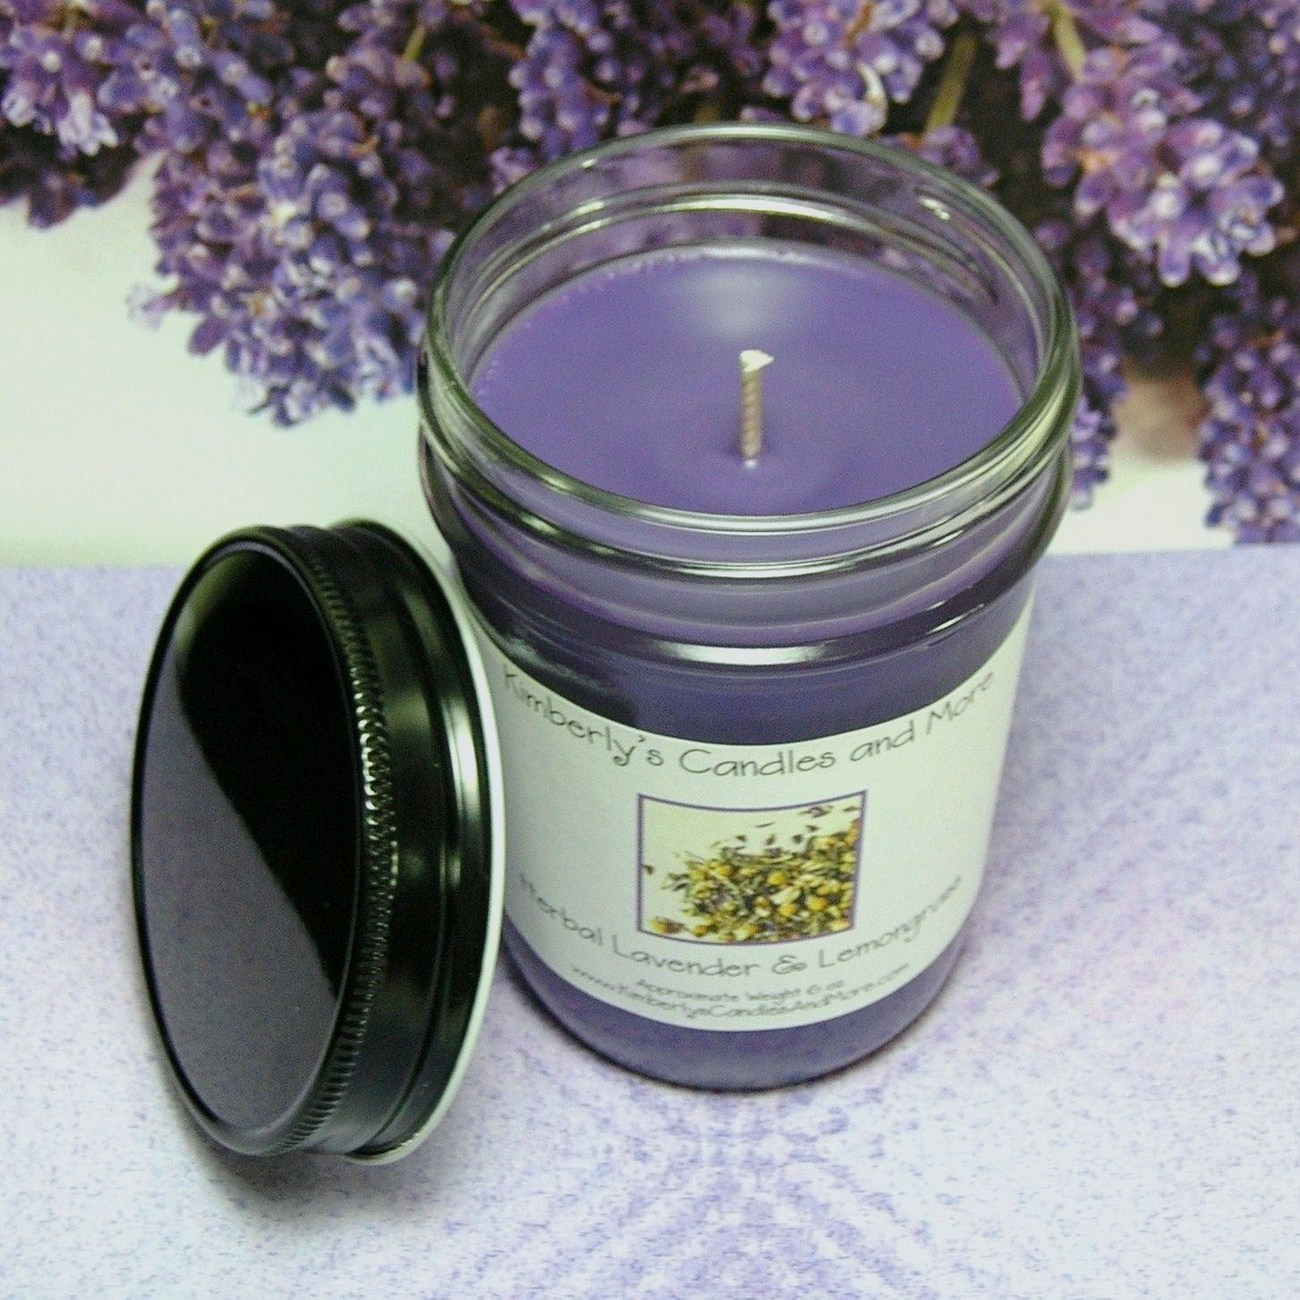 Herbal Lavender and Lemongrass PURE SOY Jelly Jar Candle